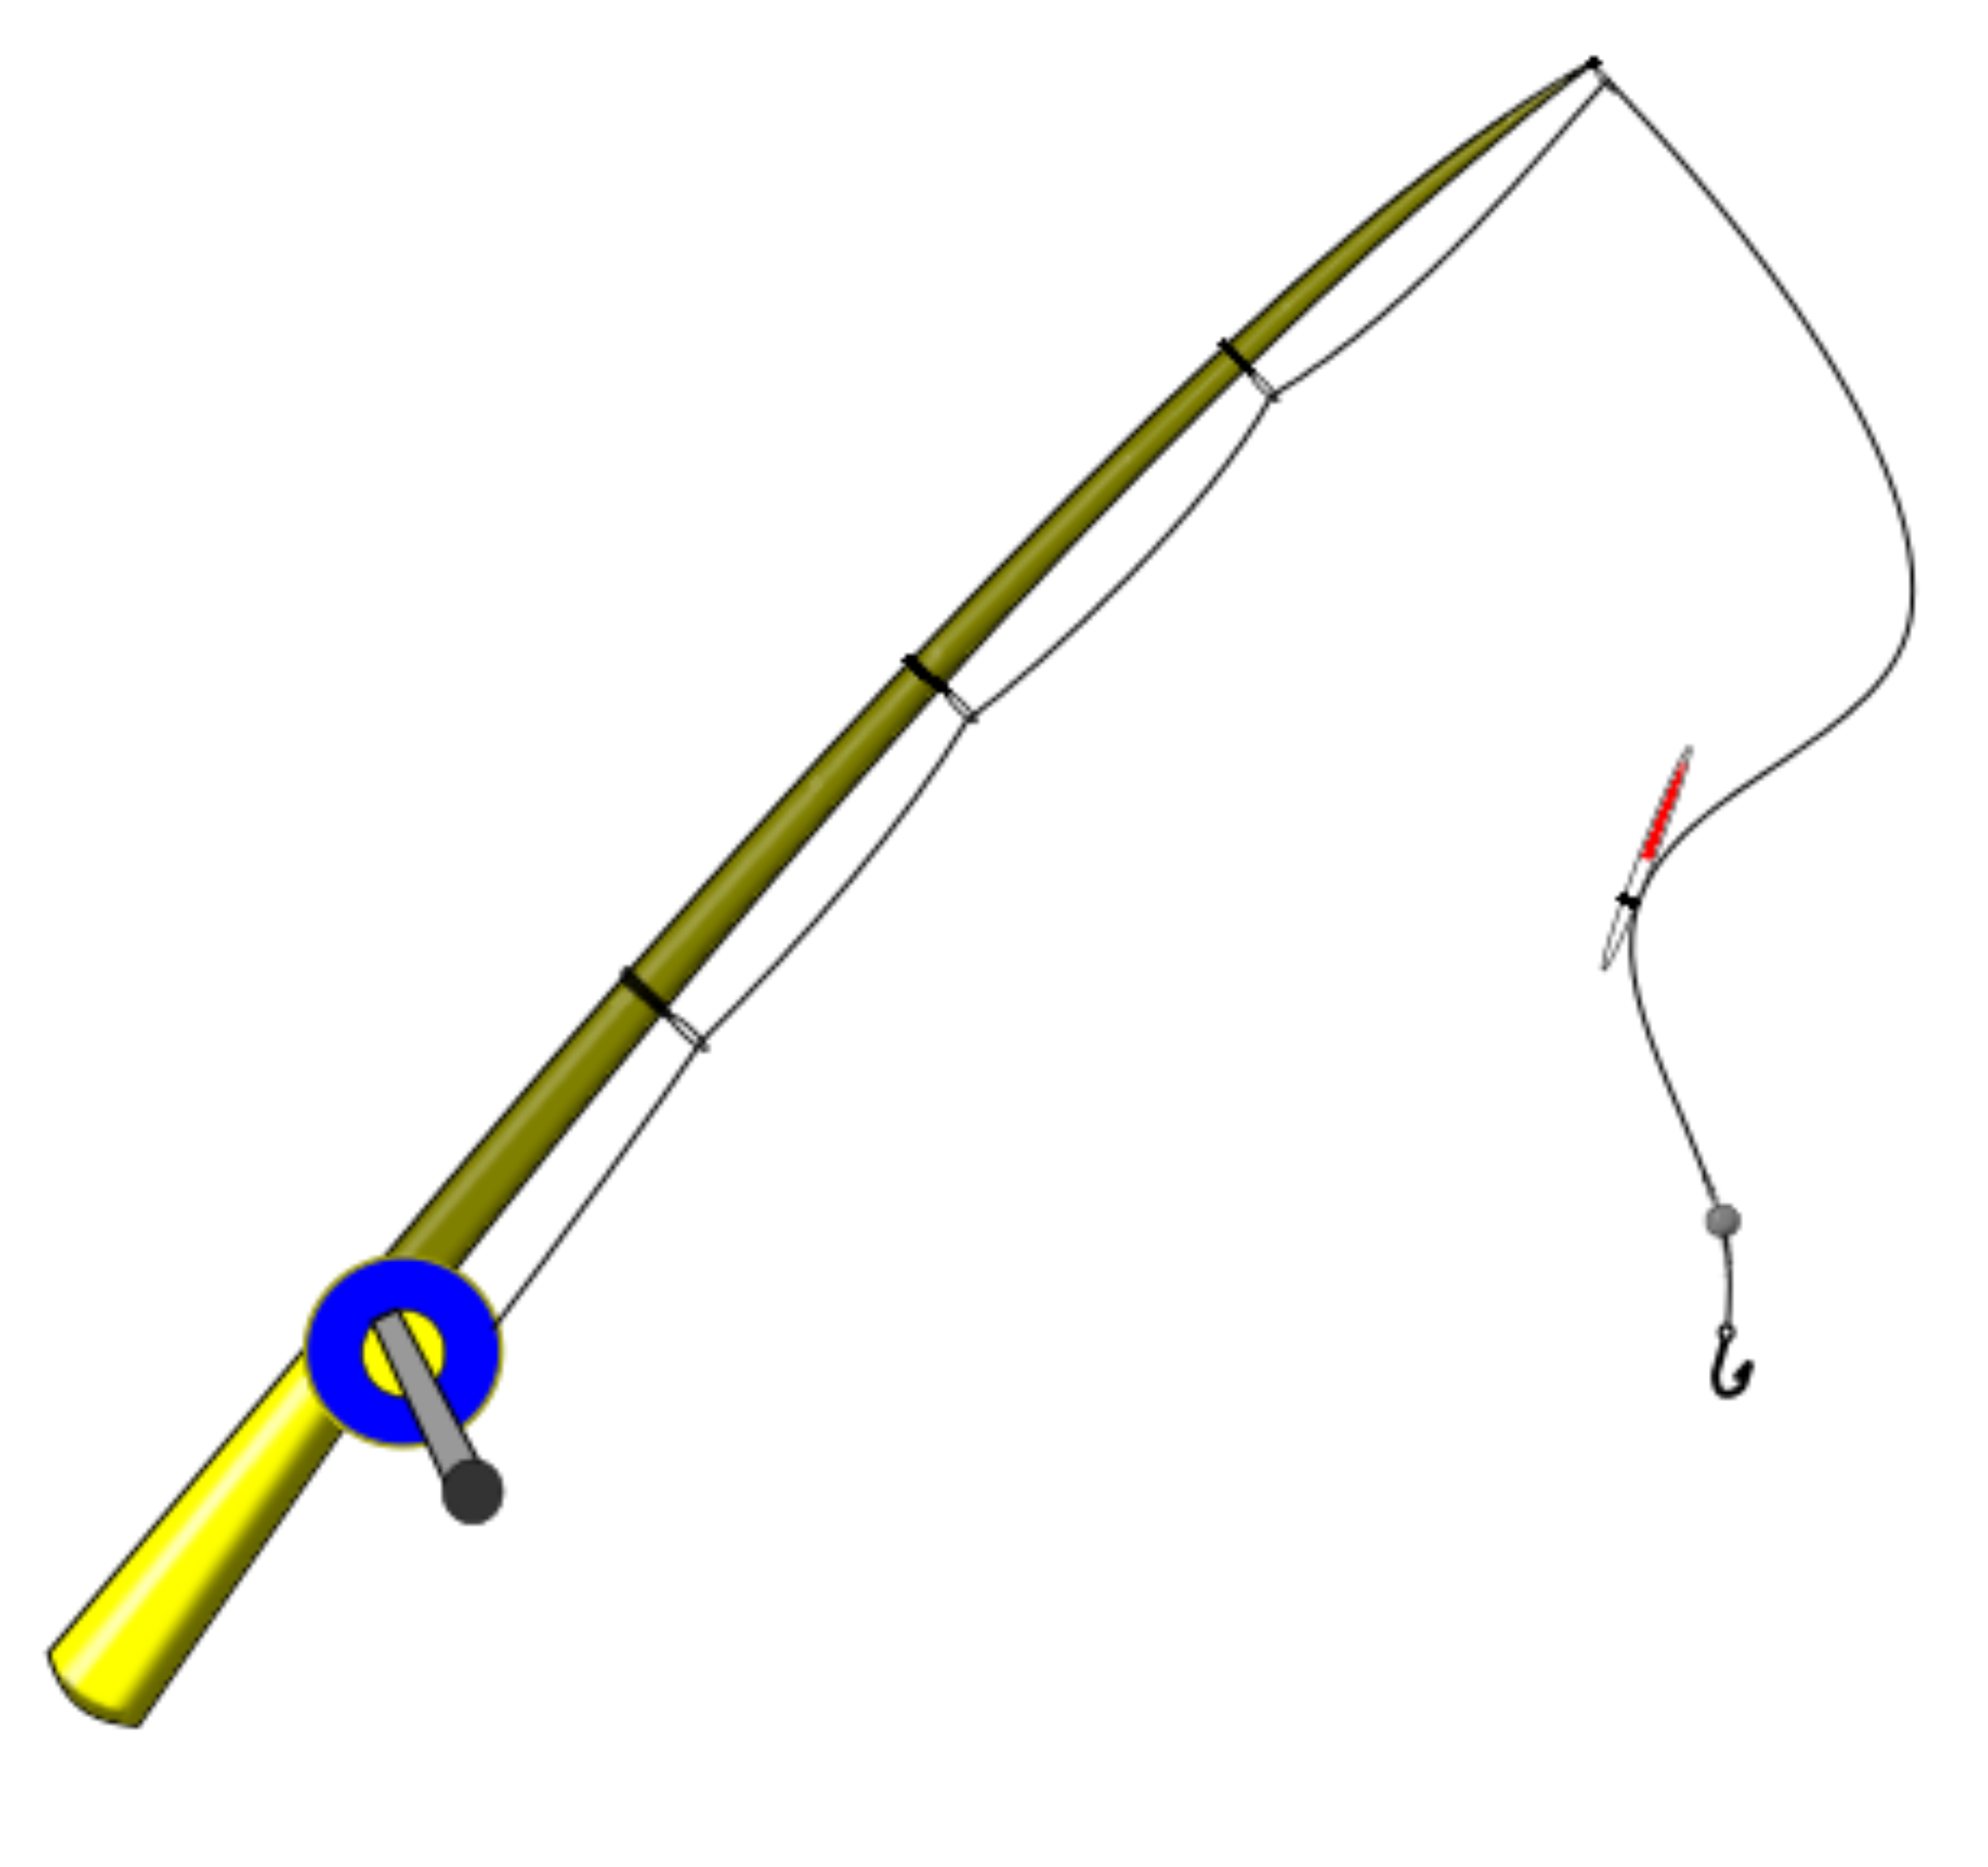 Free Fishing Pole Cliparts, Download Free Clip Art, Free.